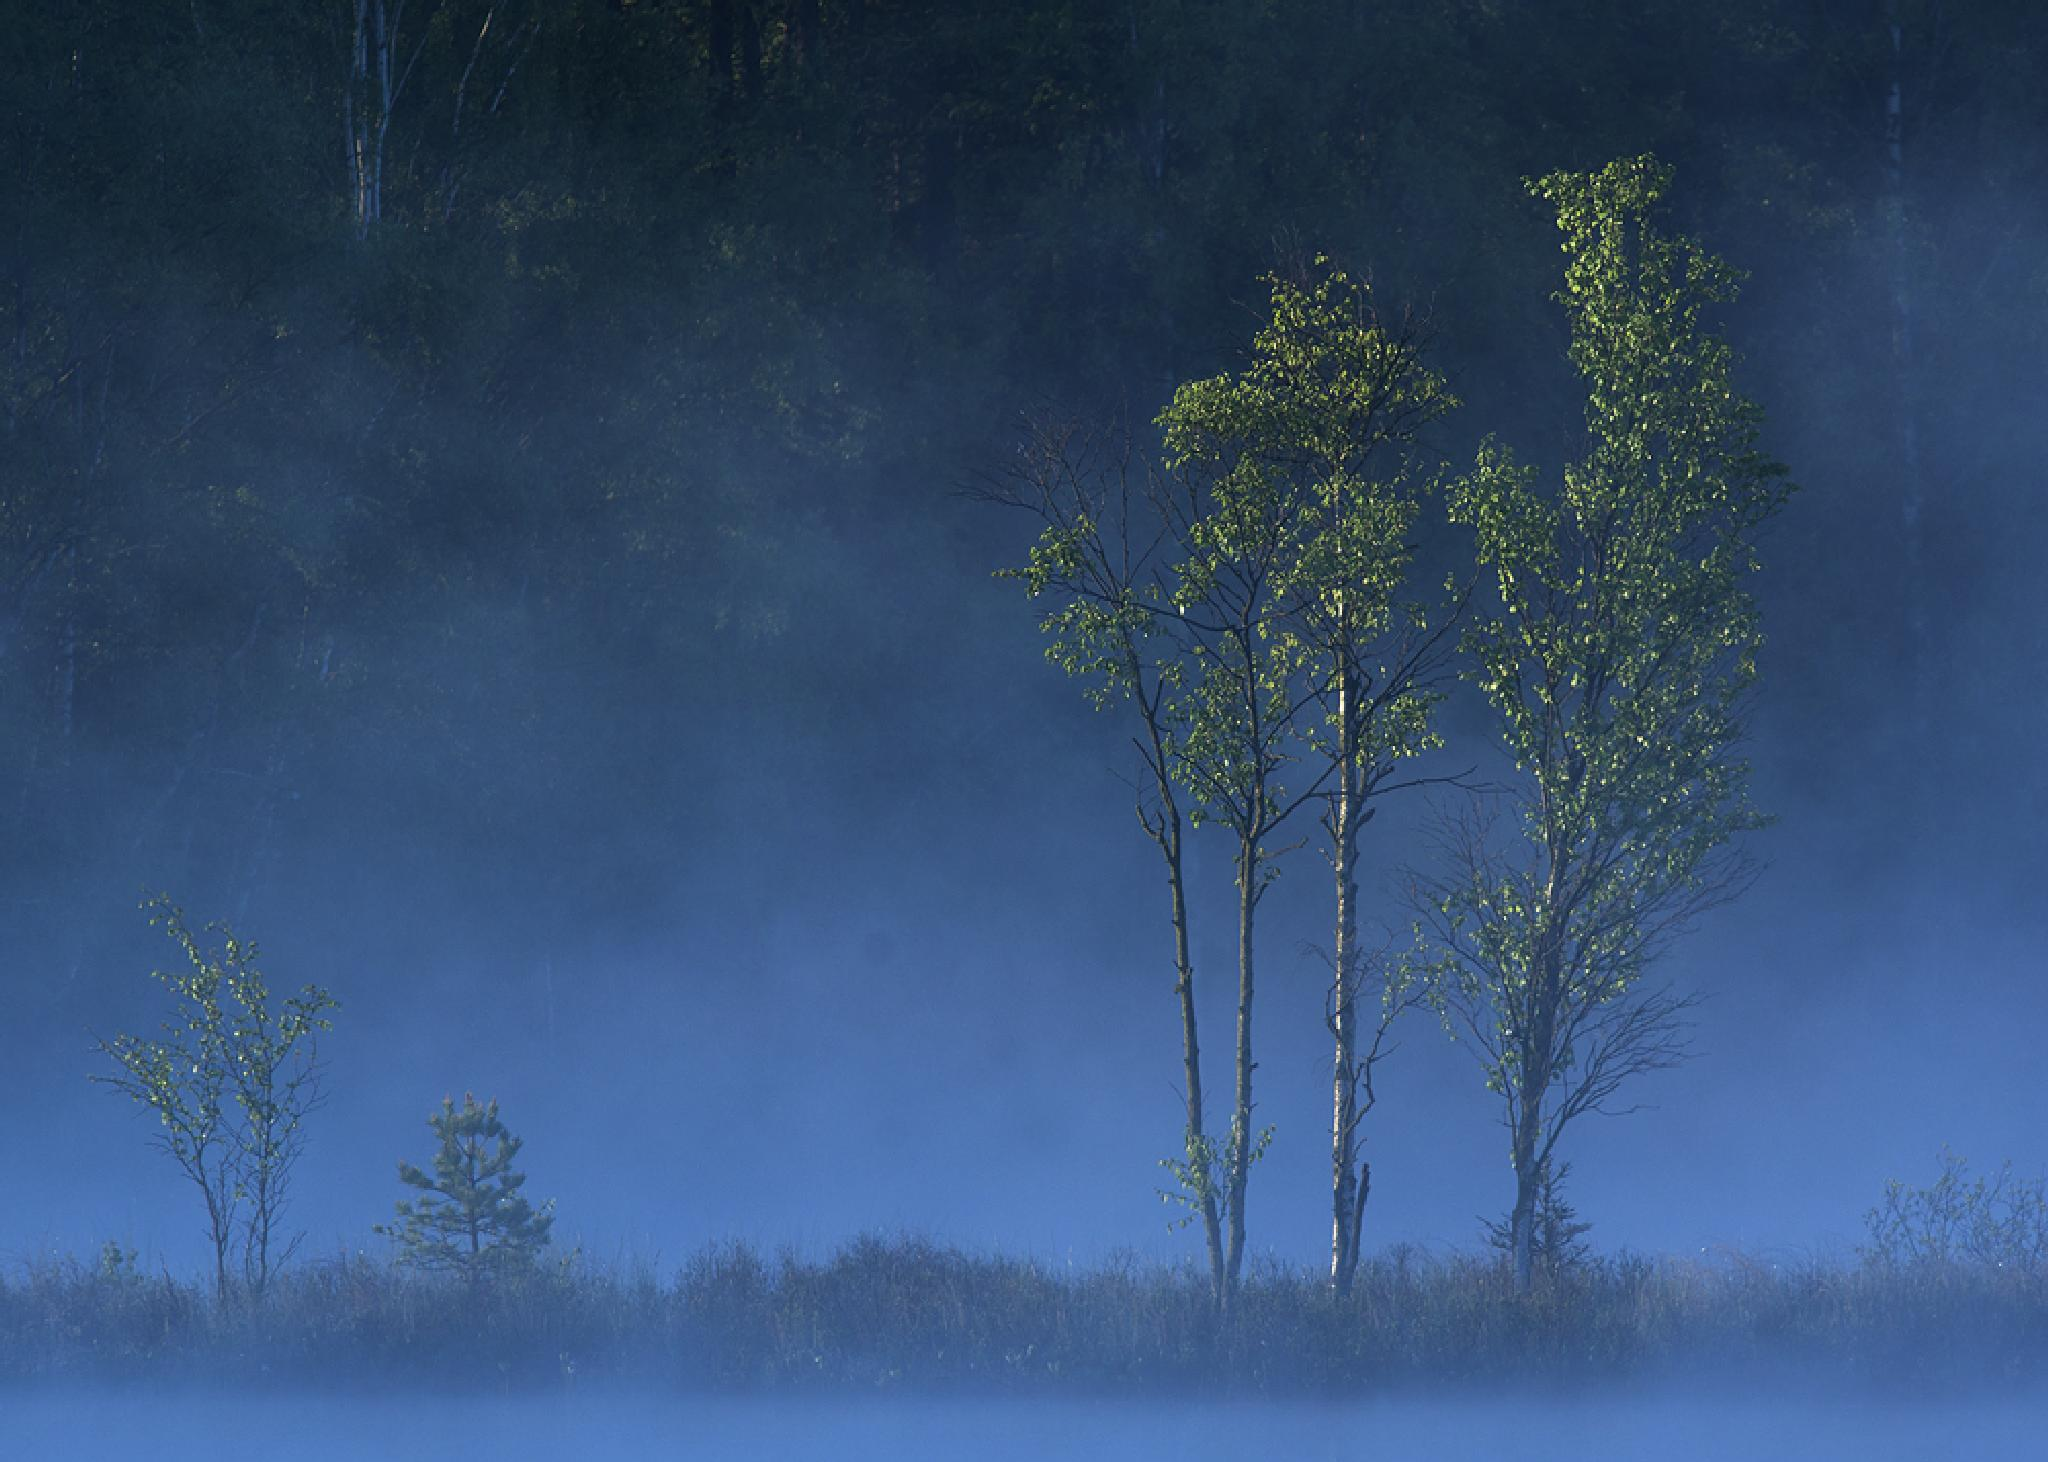 Early morning by Peter Samuelsson